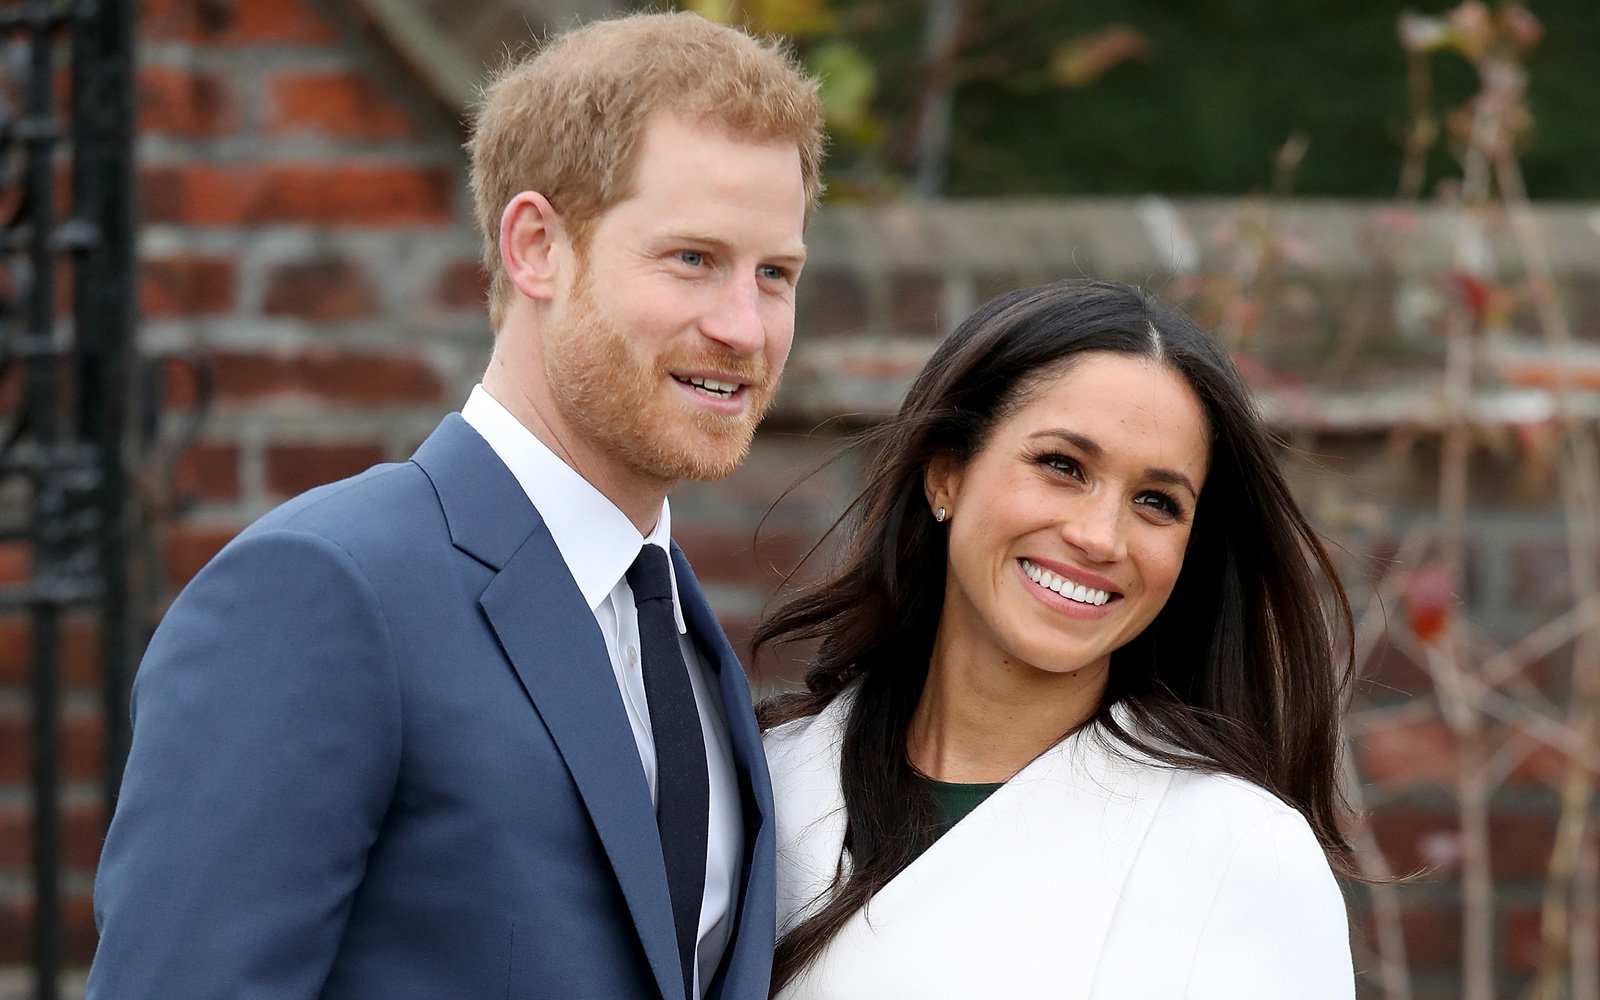 Prince Harry and Meghan Markle are engaged.